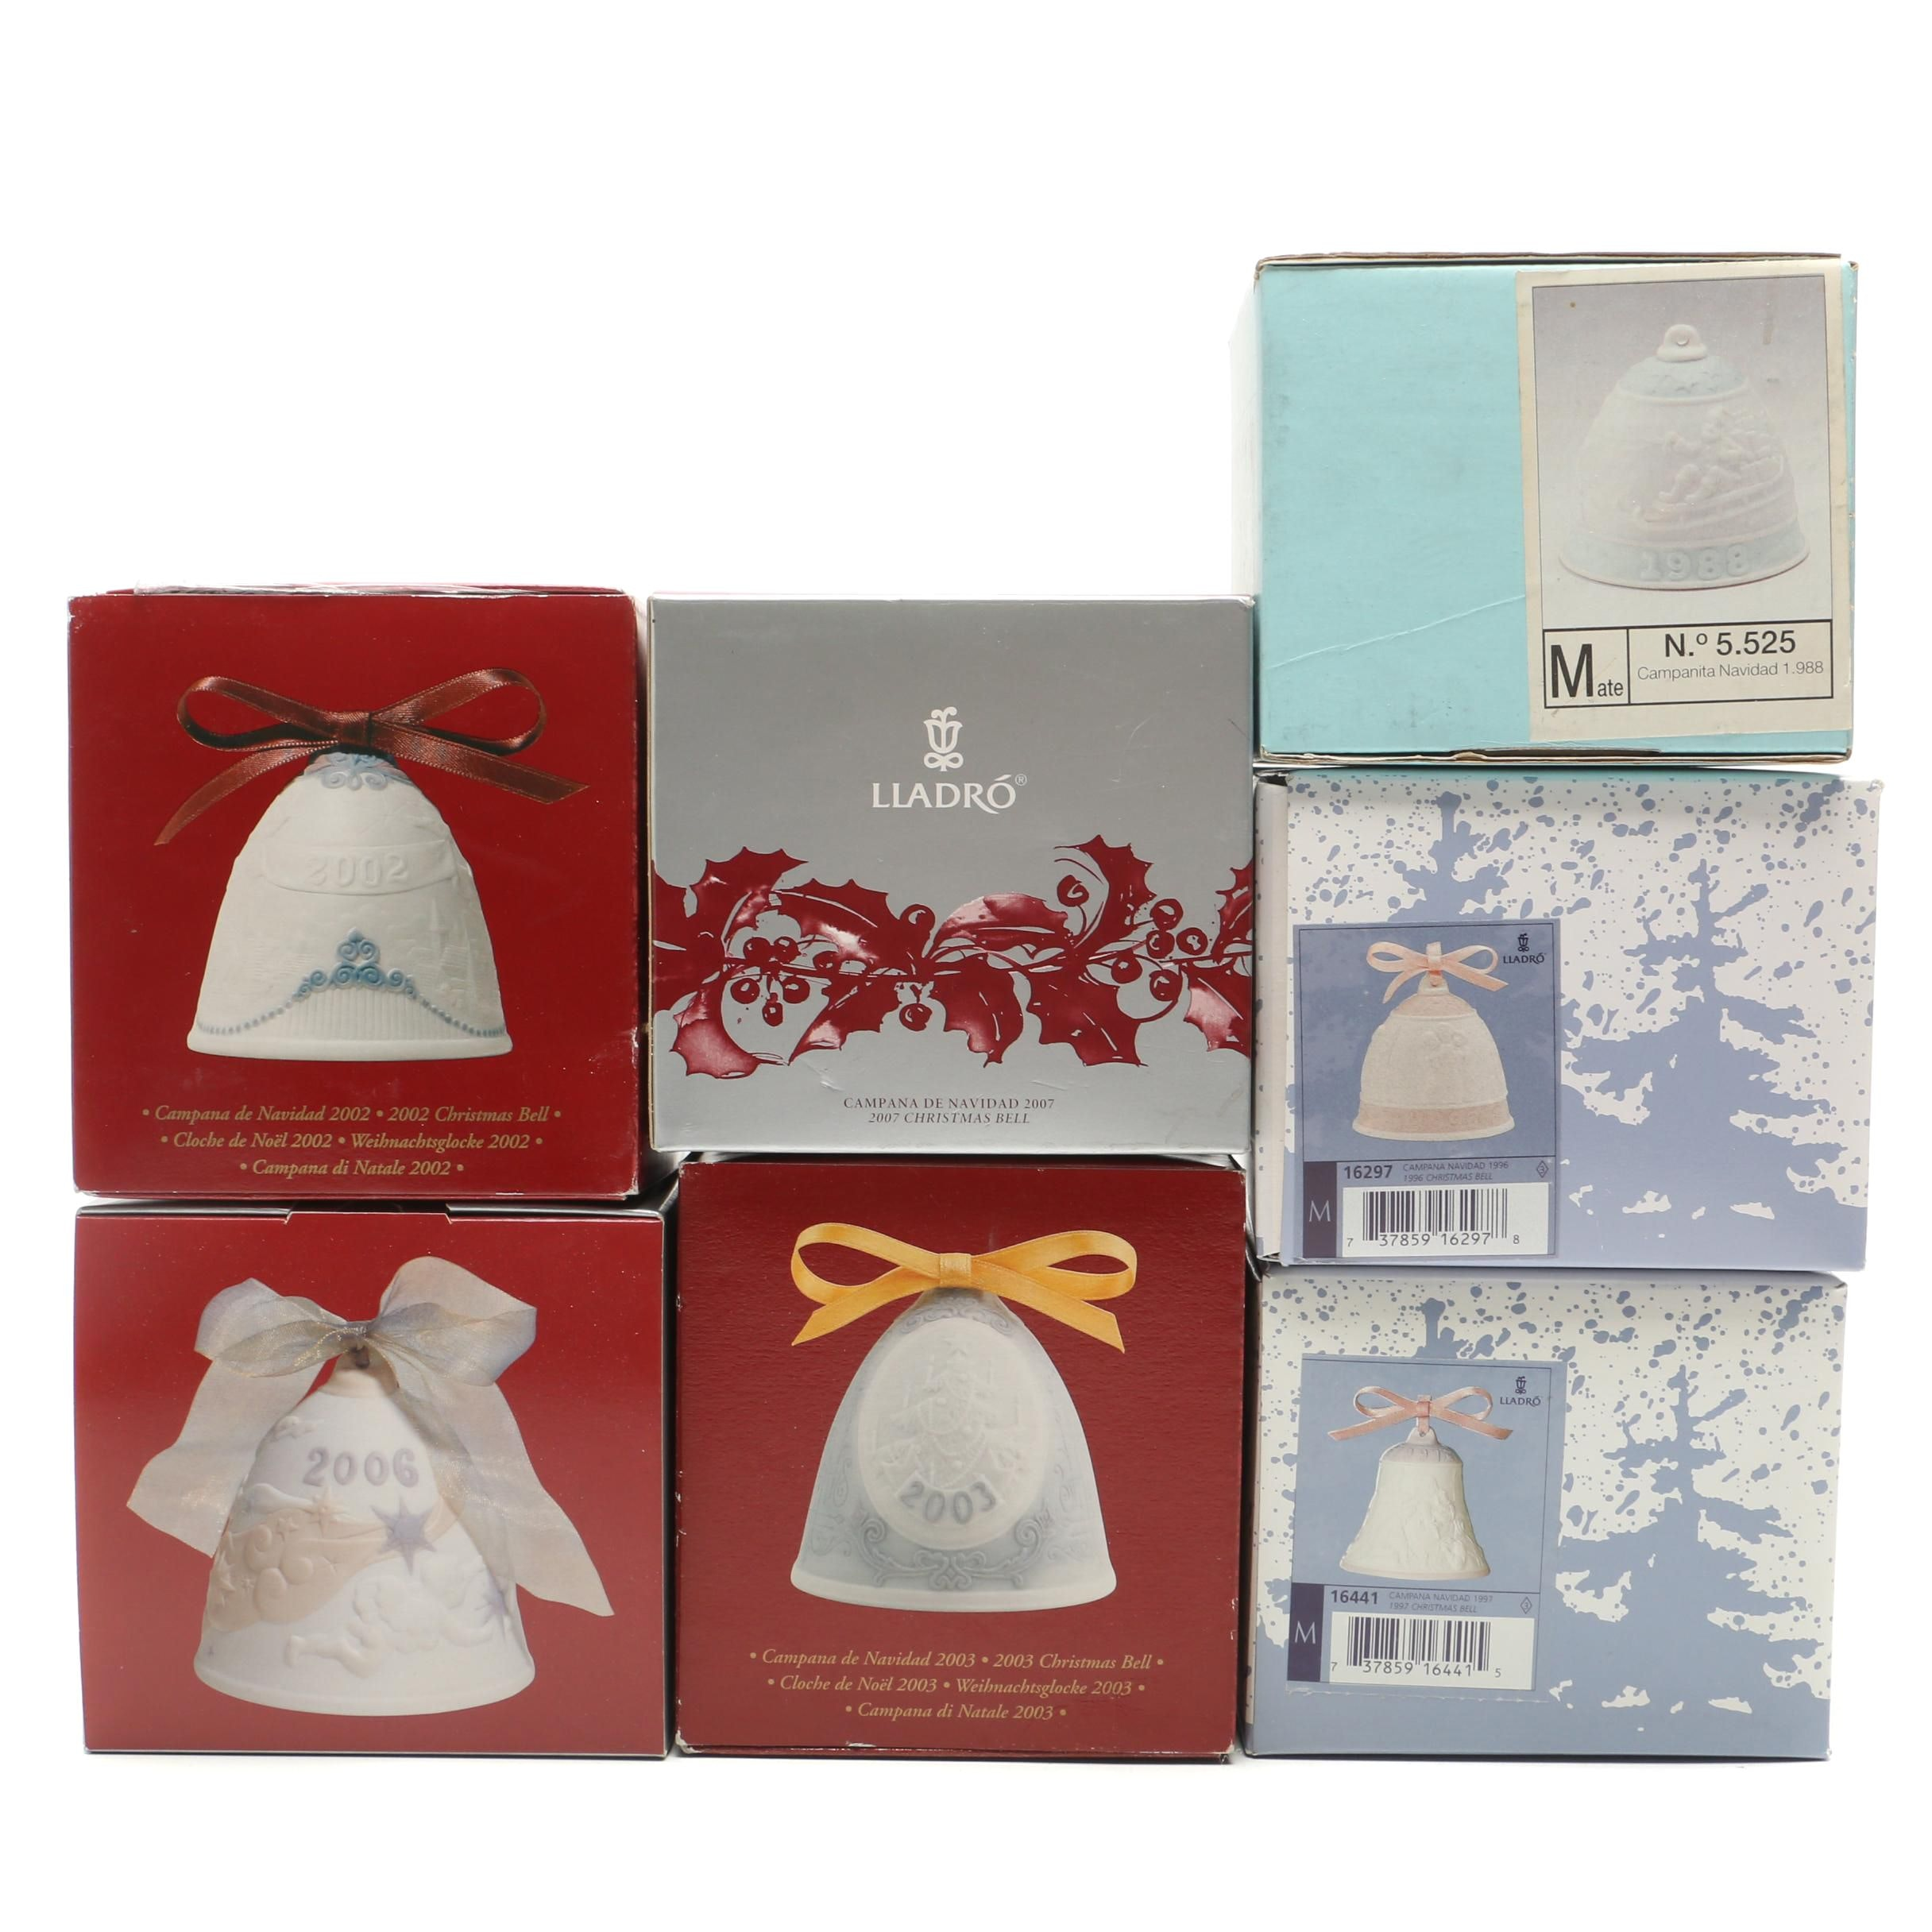 Collection of Lladro Ceramic Christmas Ornaments